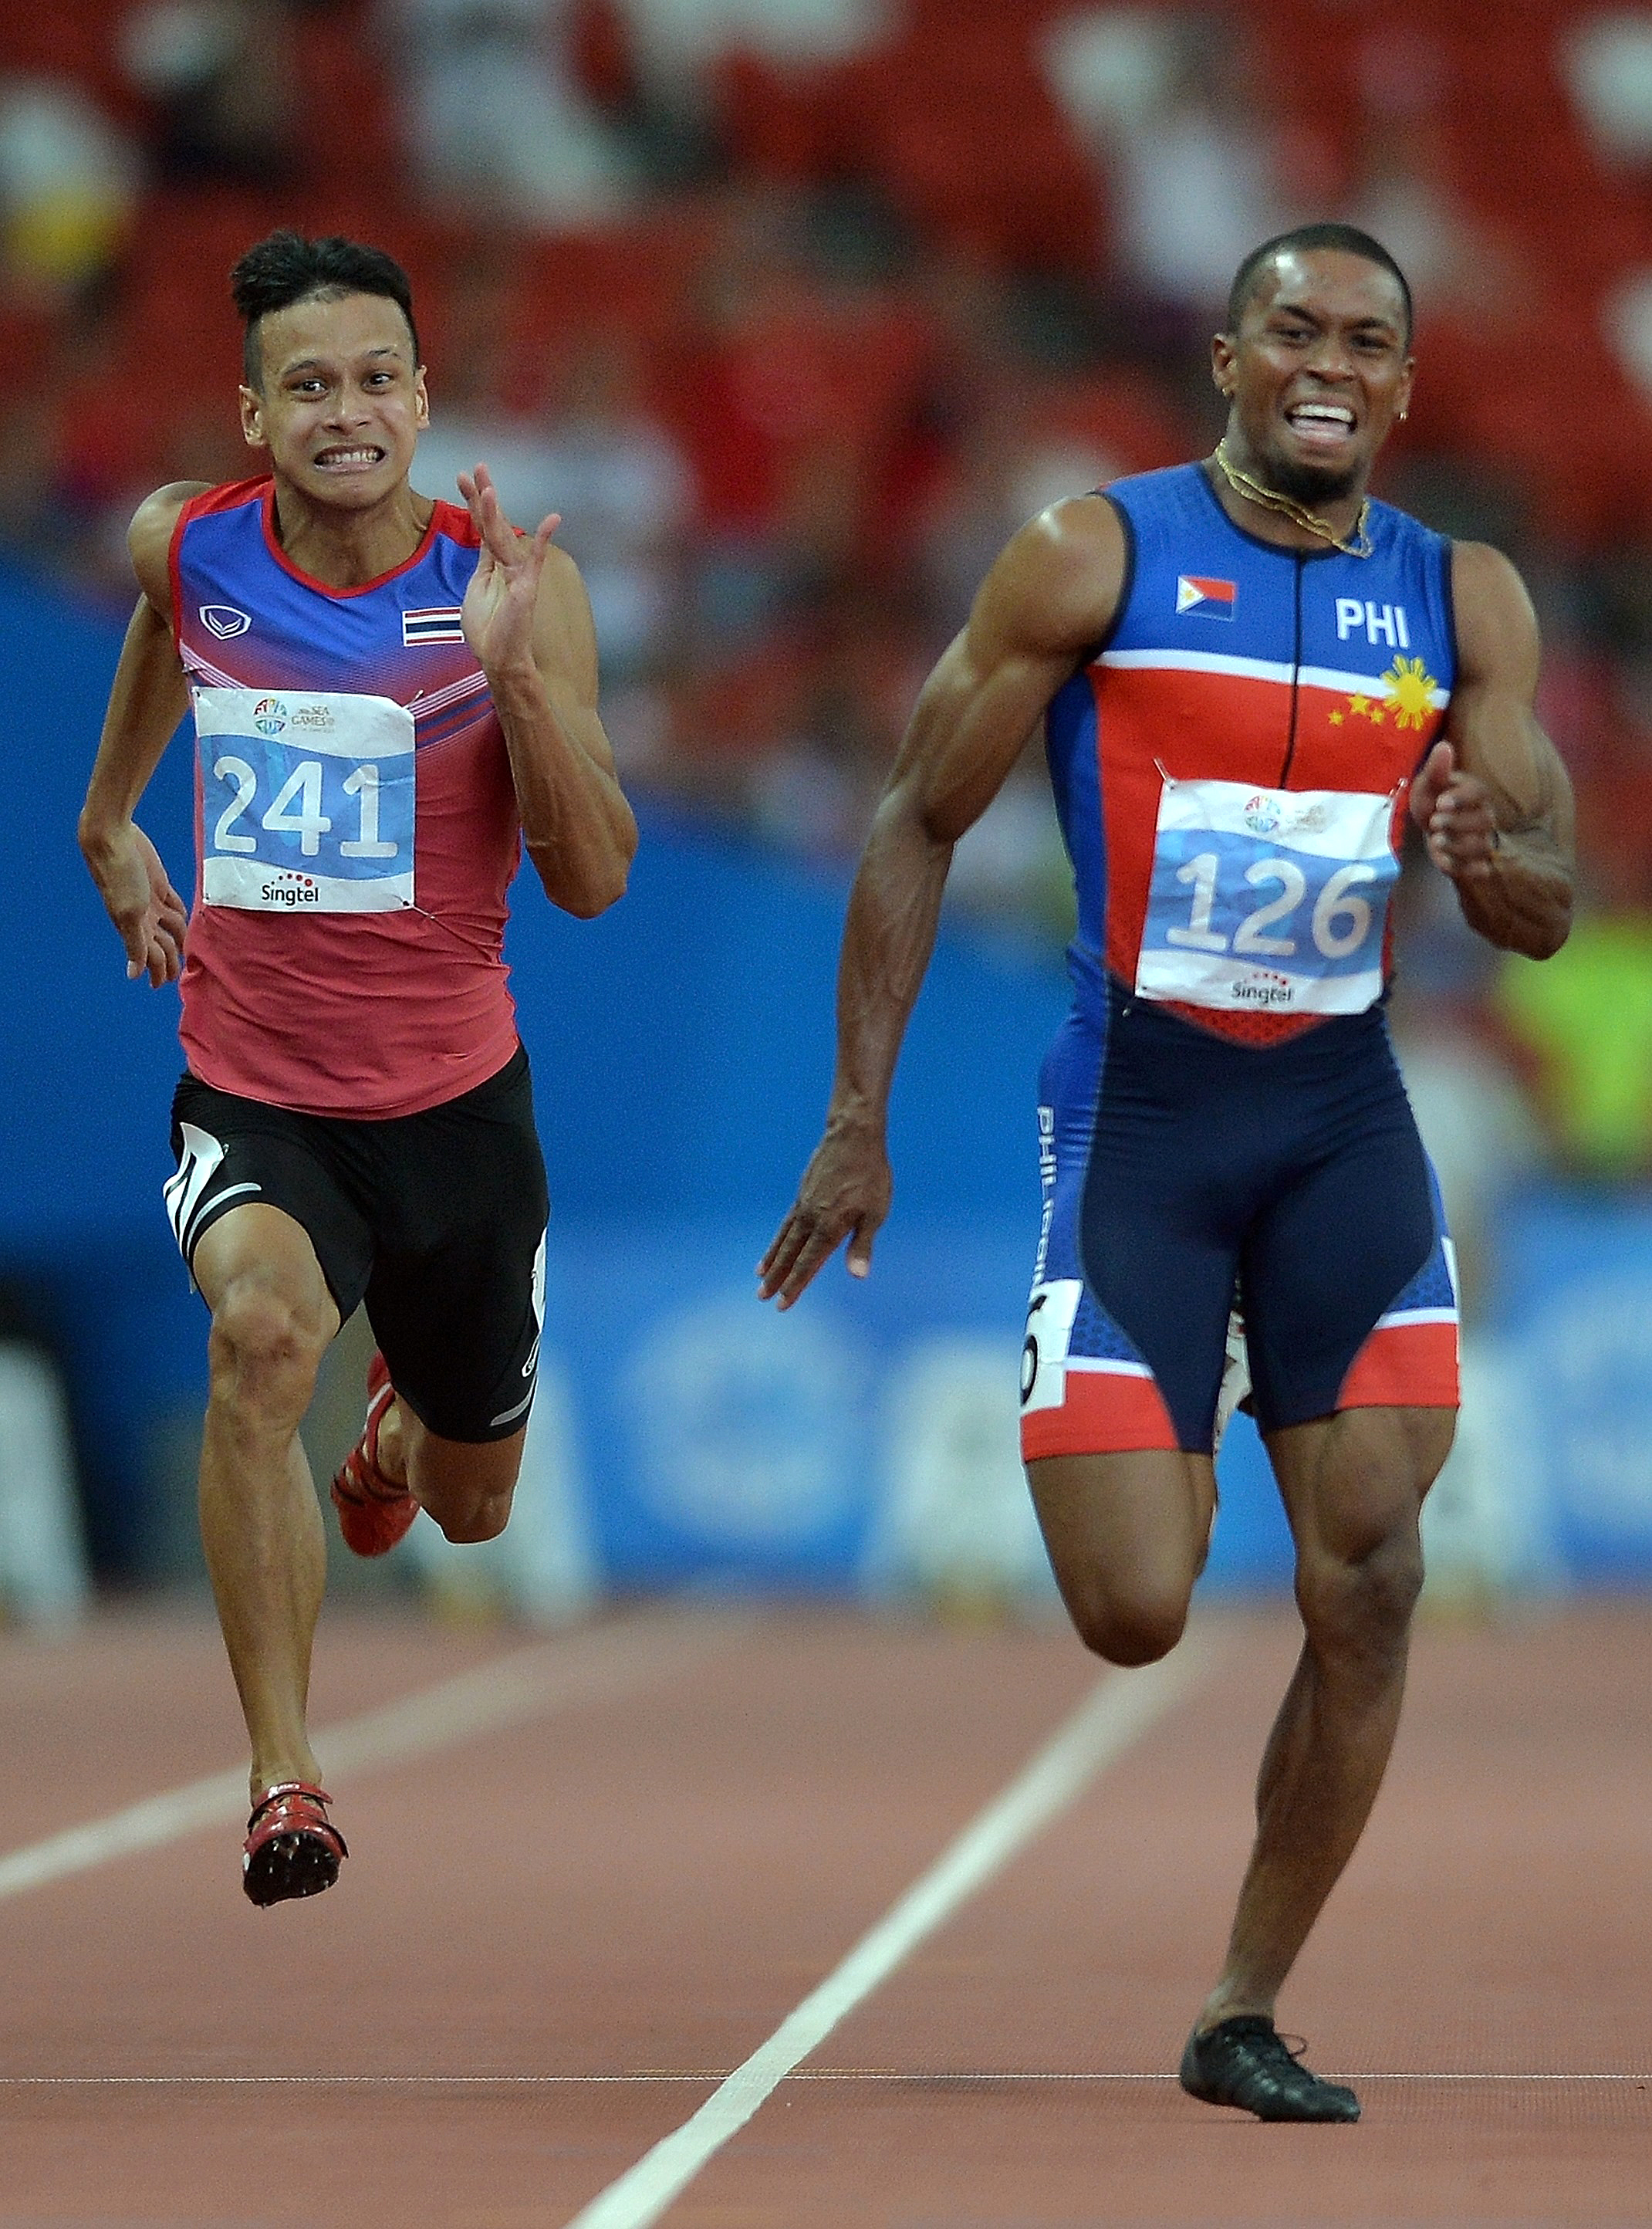 Eric Cray LOOK Philippines39 Eric Cray is Southeast Asia39s fastest